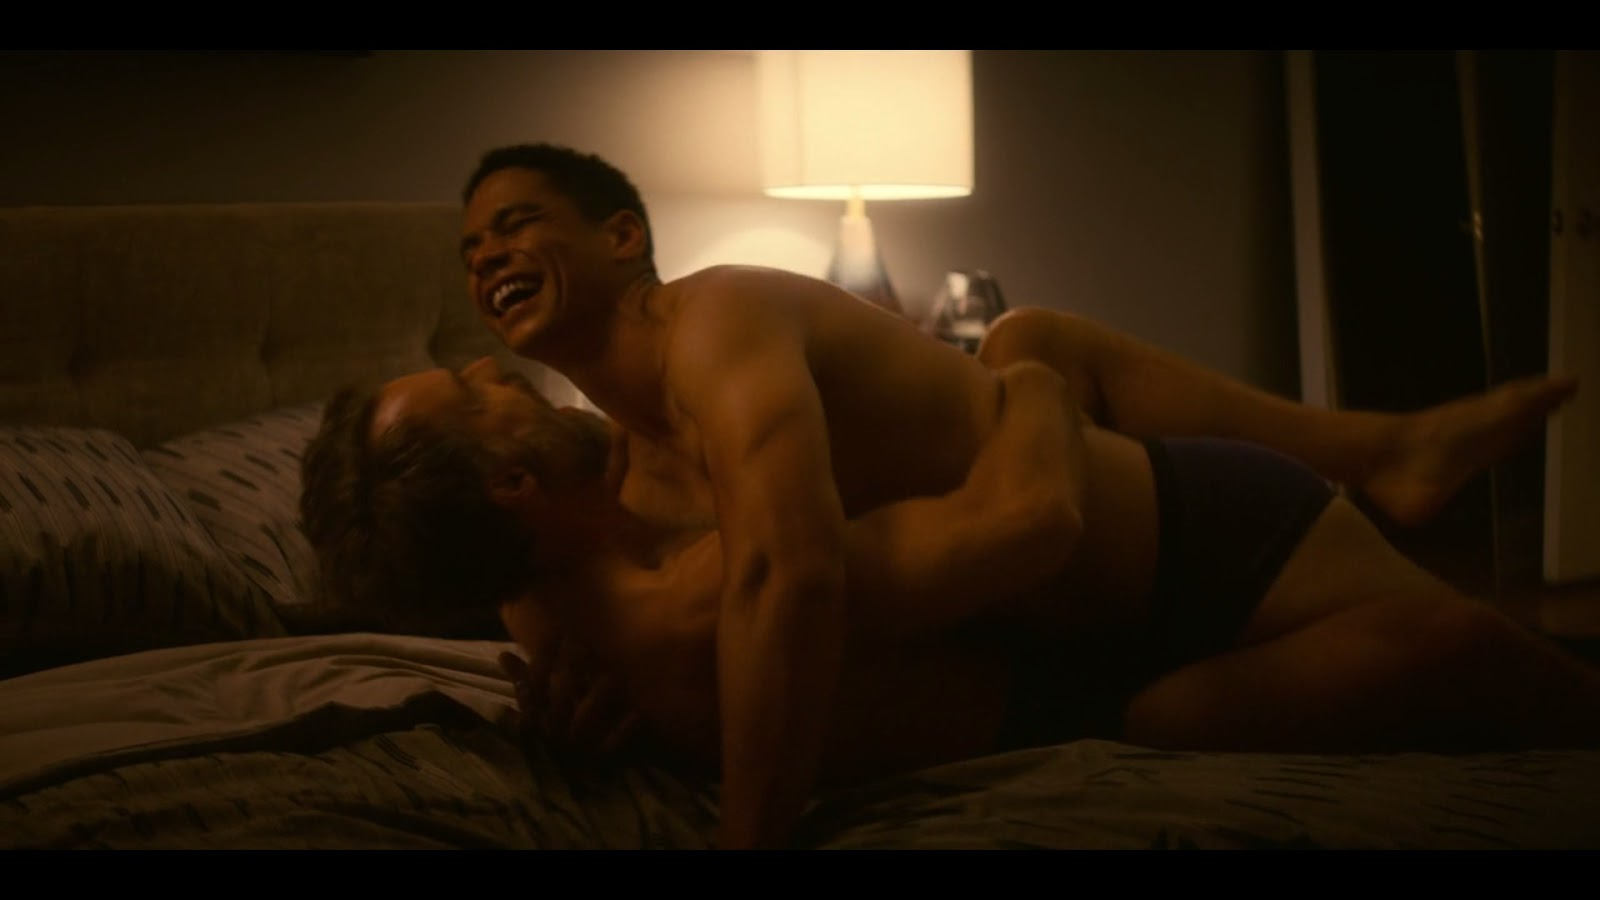 Showing xxx images for charlie hunnam gay porn xxx